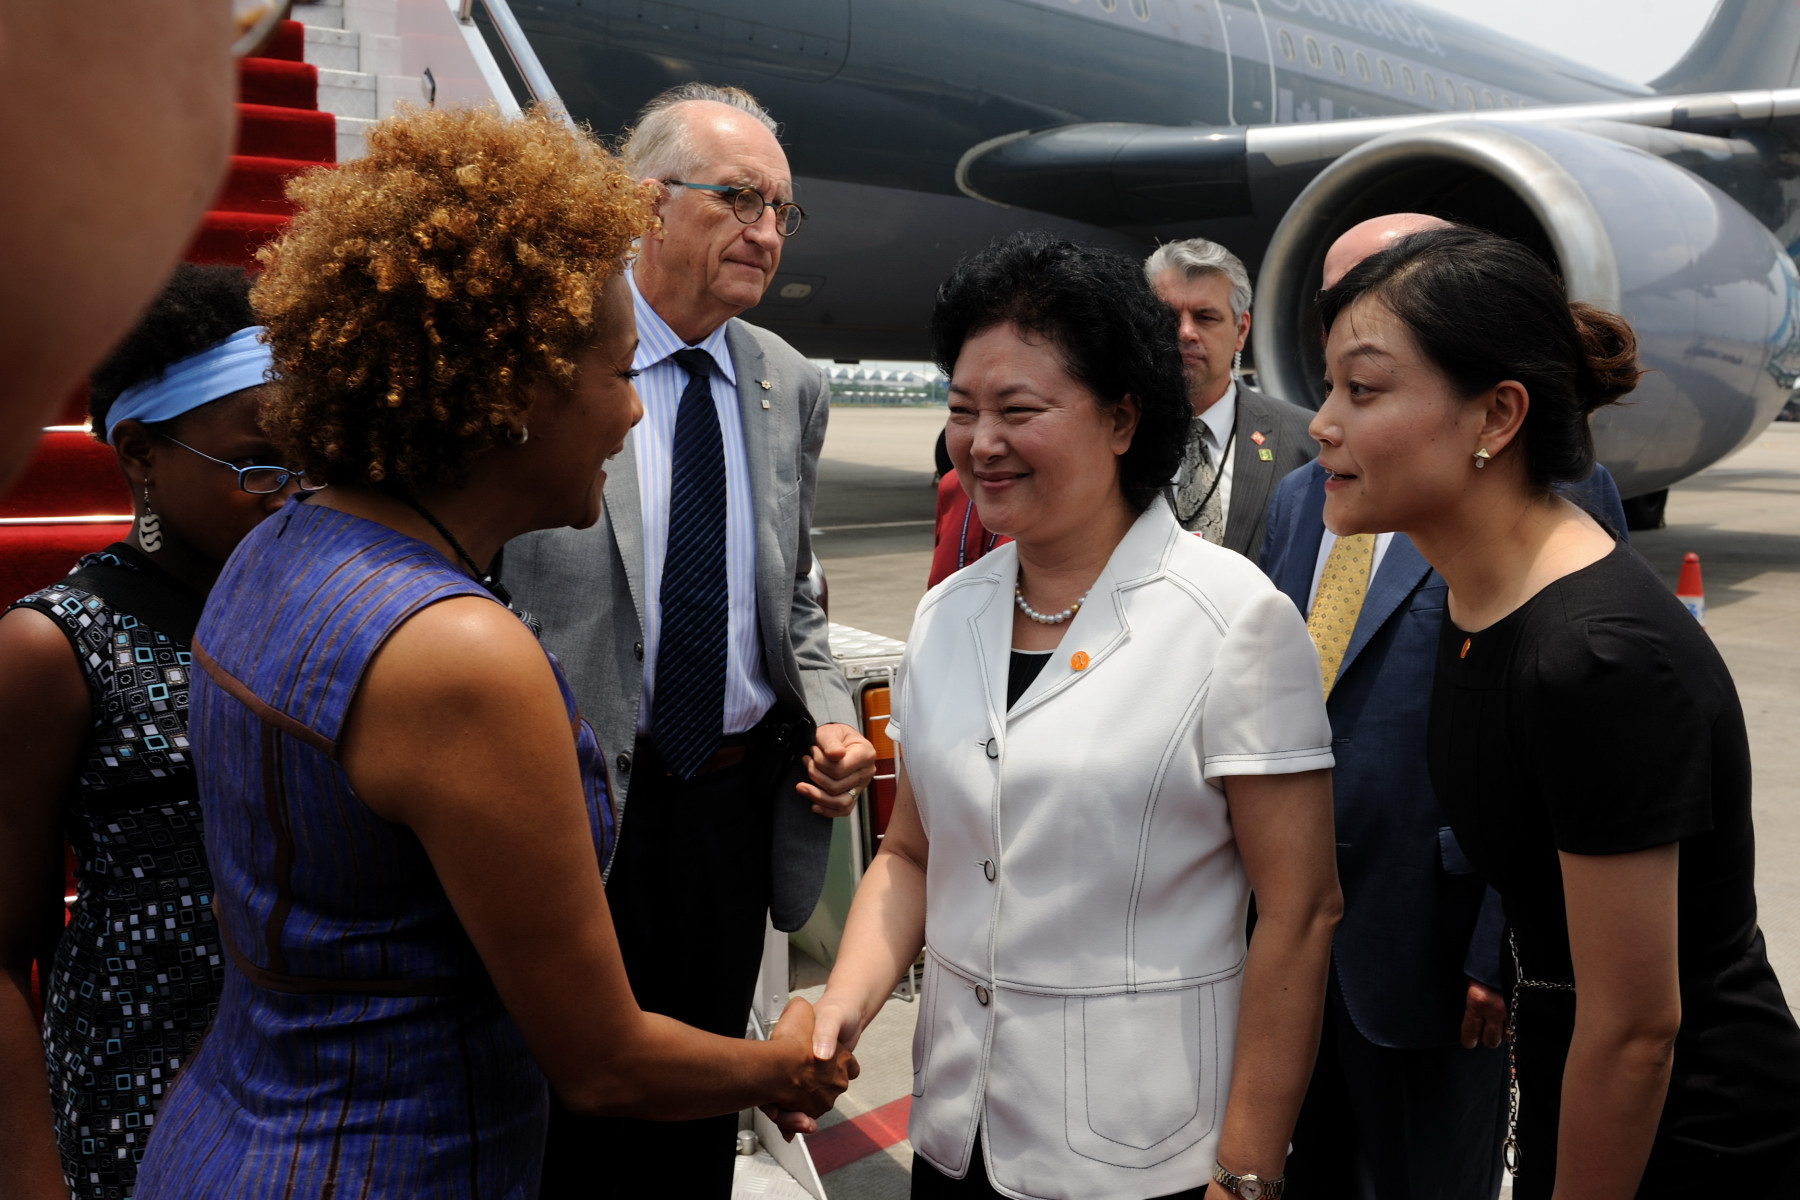 Upon their arrival in Guangzhou, Their Excellencies, Marie-Éden and the delegation were welcomed by the Vice-Governor of Guangdong.